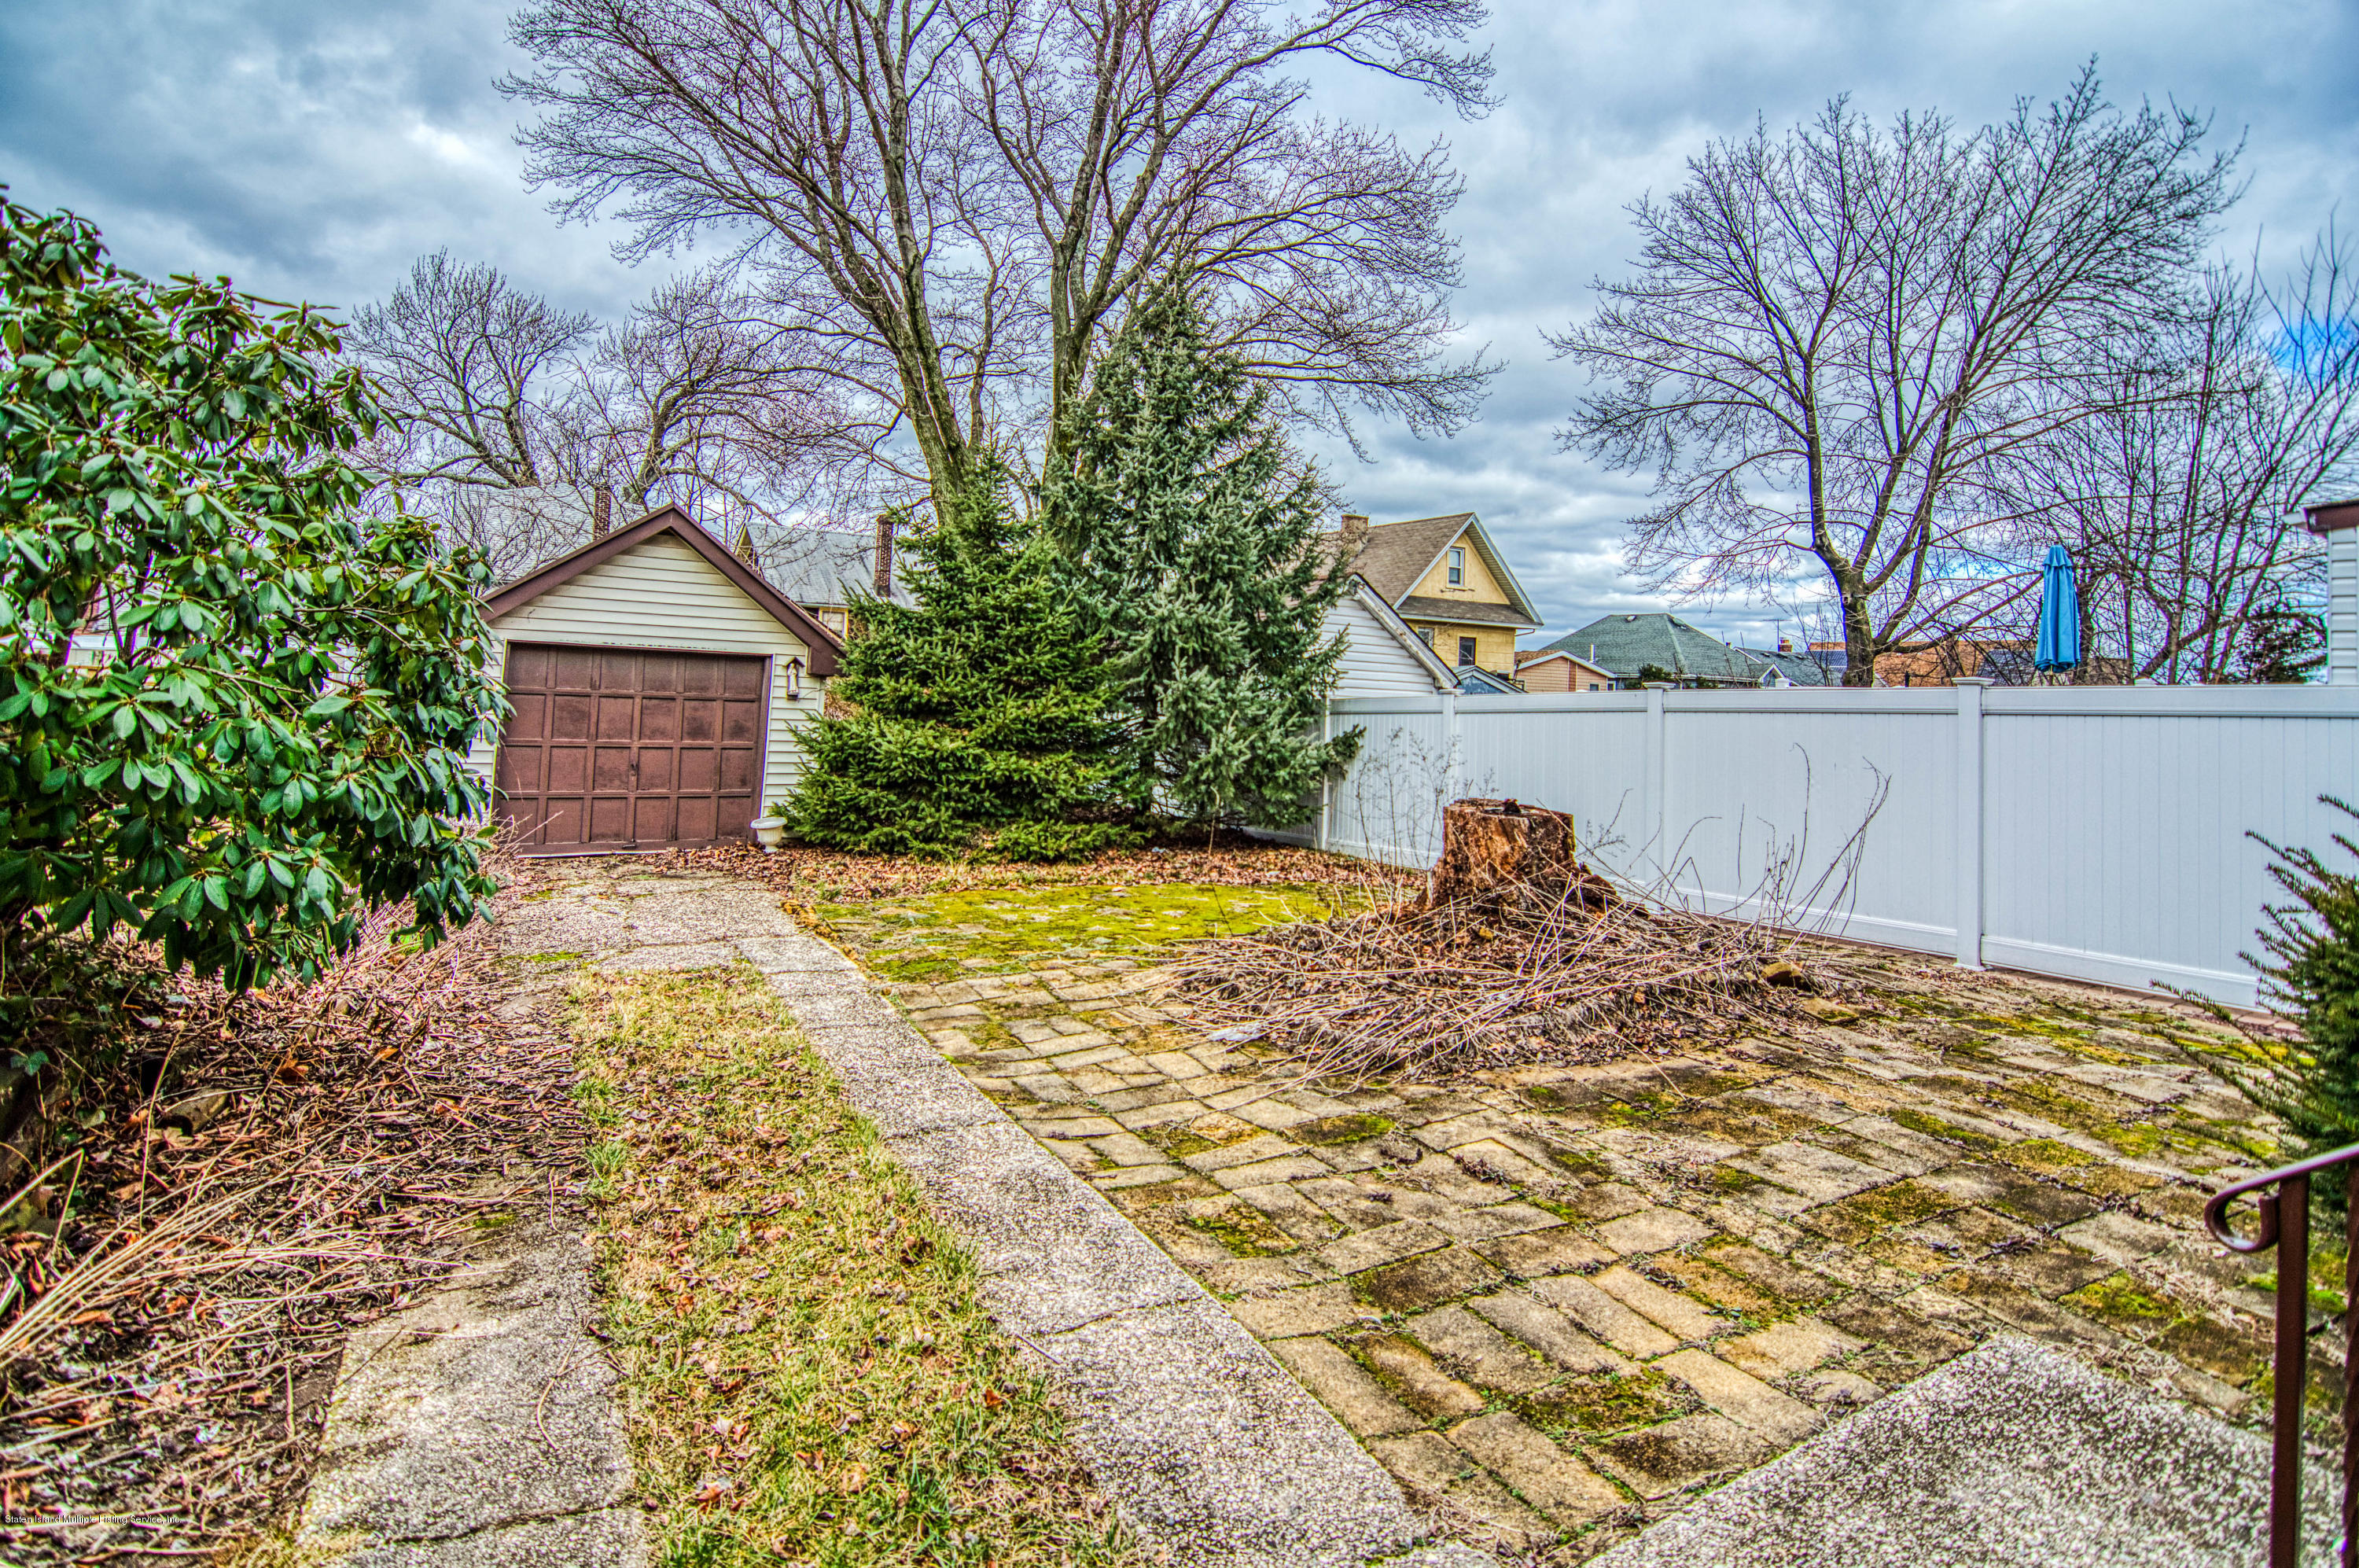 Single Family - Detached 54 Quinlan Avenue  Staten Island, NY 10314, MLS-1135997-21